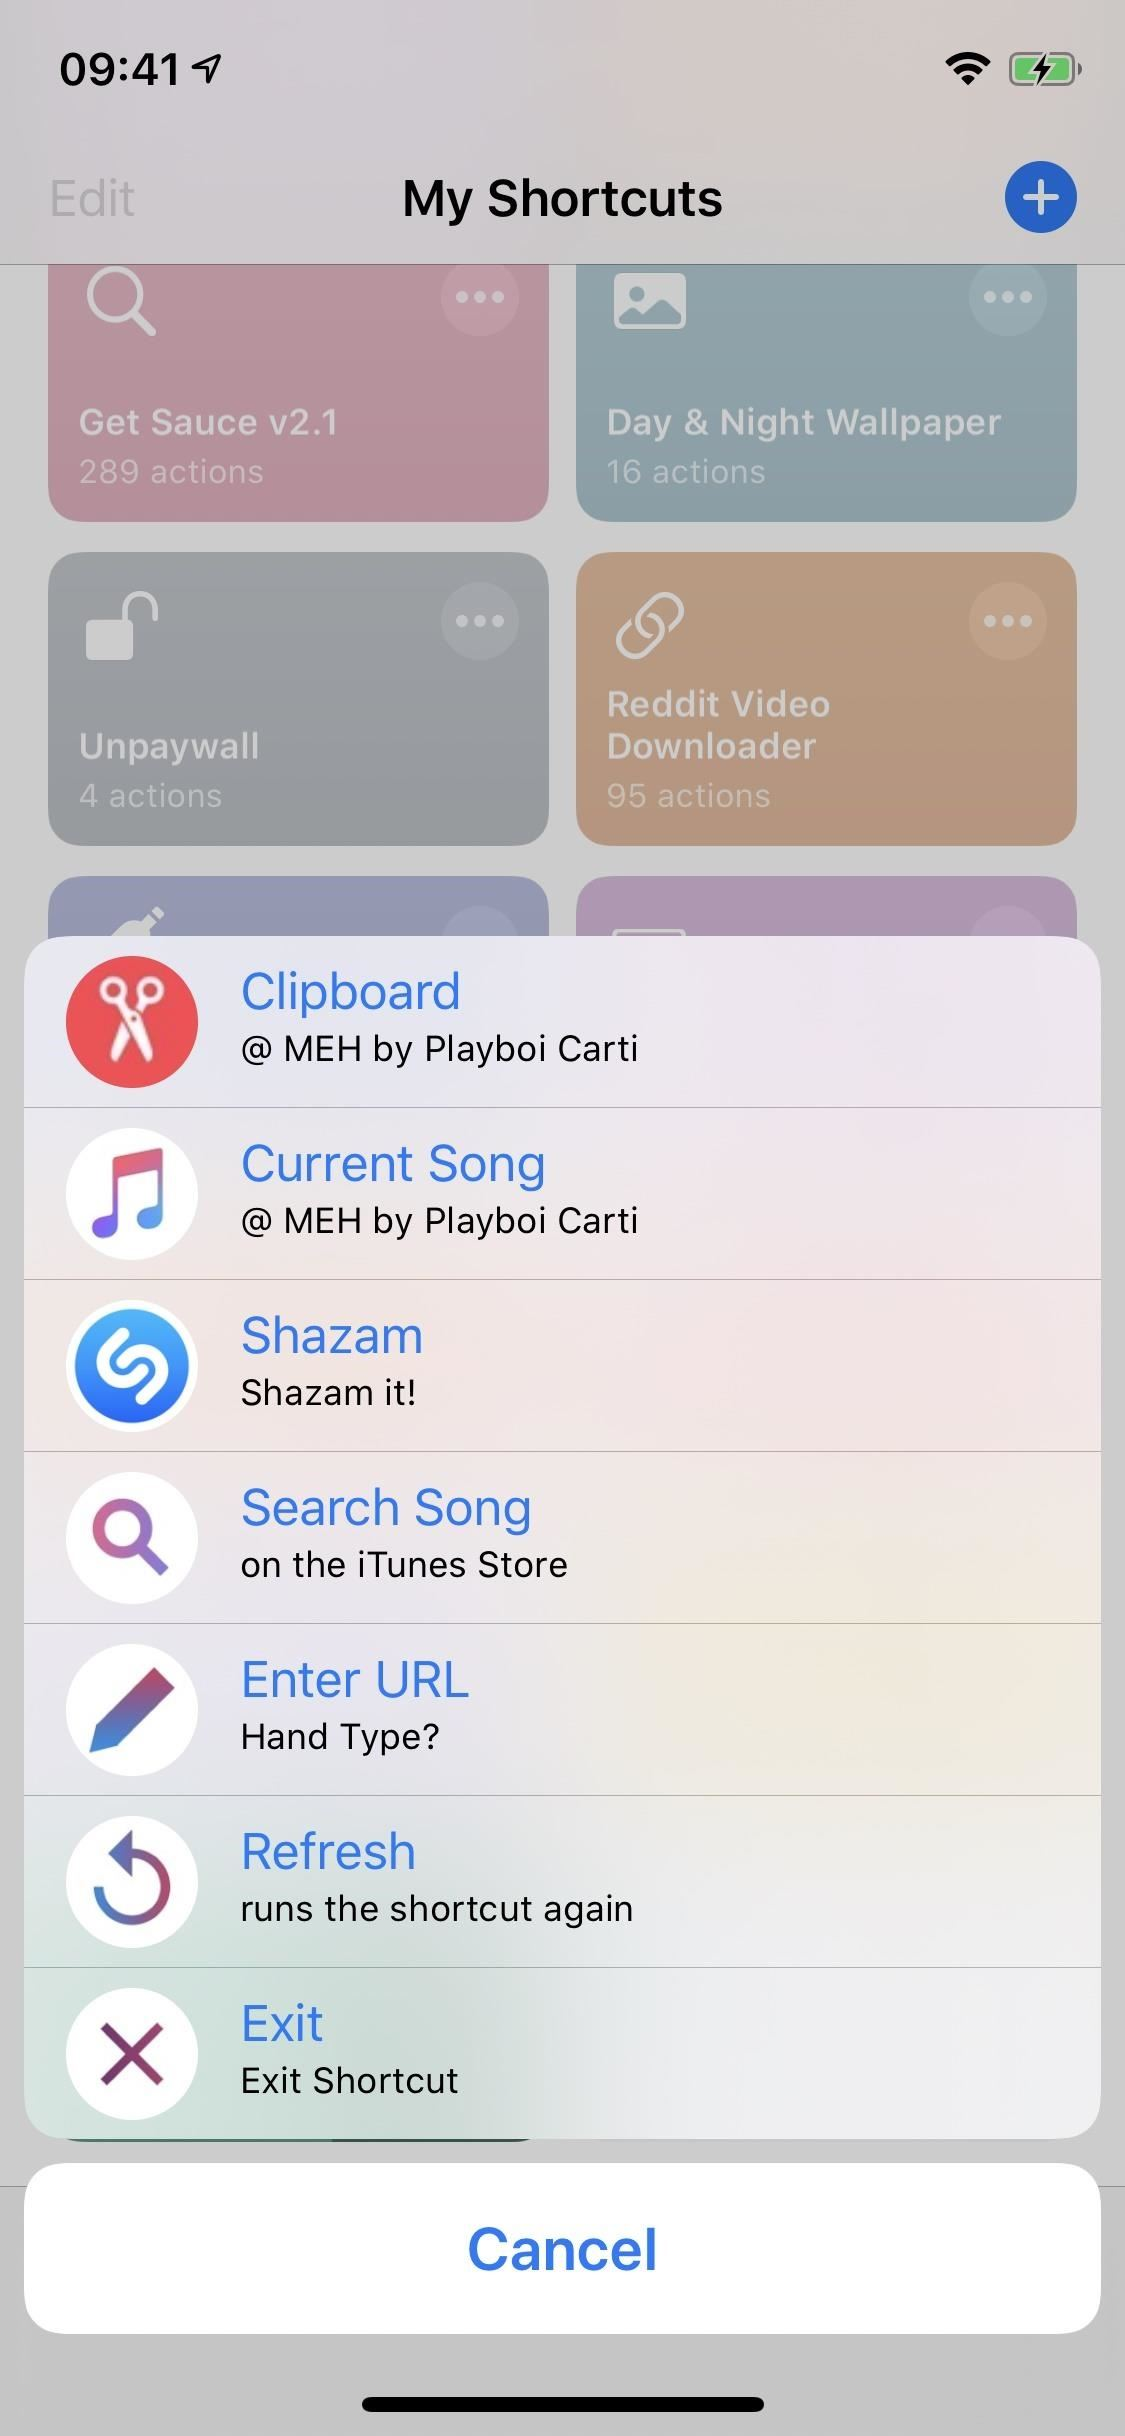 How to Share Apple Music Songs to Spotify Users (& Vice Versa) on Your iPhone